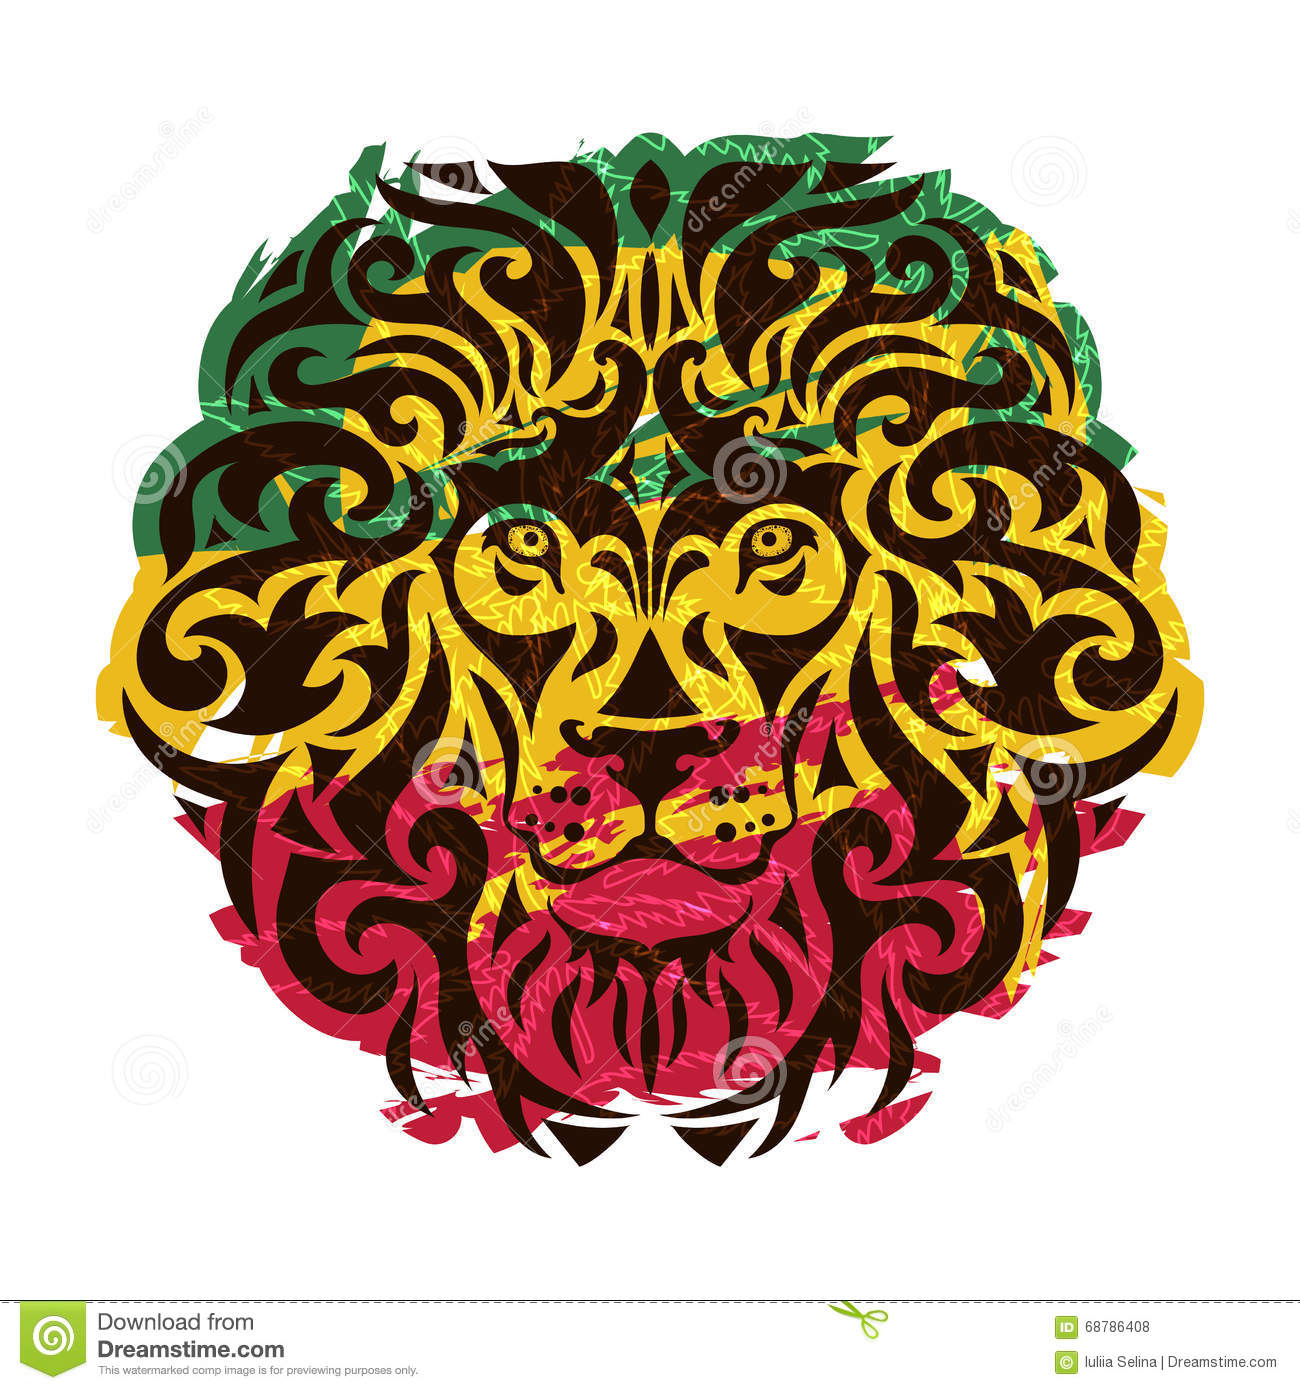 Rasta stock illustrations 1609 rasta stock illustrations rasta lion vector rasta theme with lion head on a white background vector illustration biocorpaavc Image collections